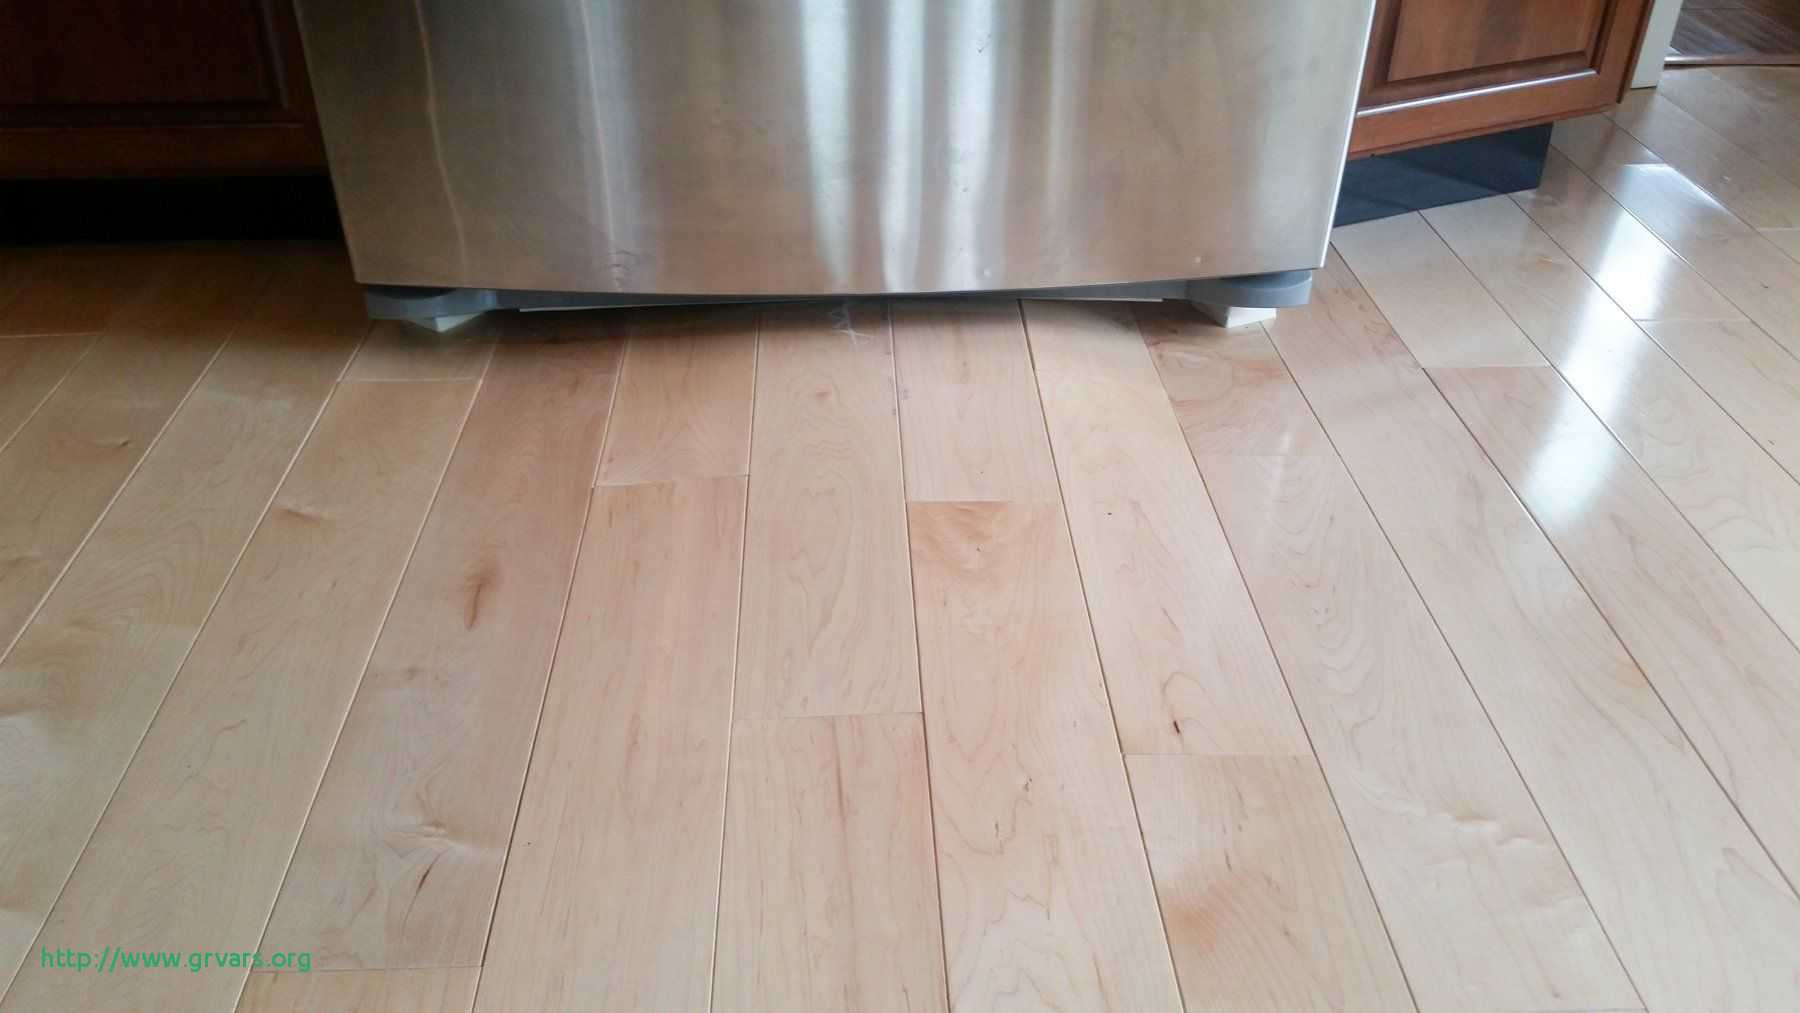 candle wax on hardwood floor of 17 charmant how to remove wax from laminate floor ideas blog with how to remove wax from laminate floor a‰lagant easy tips removing water damage from wood